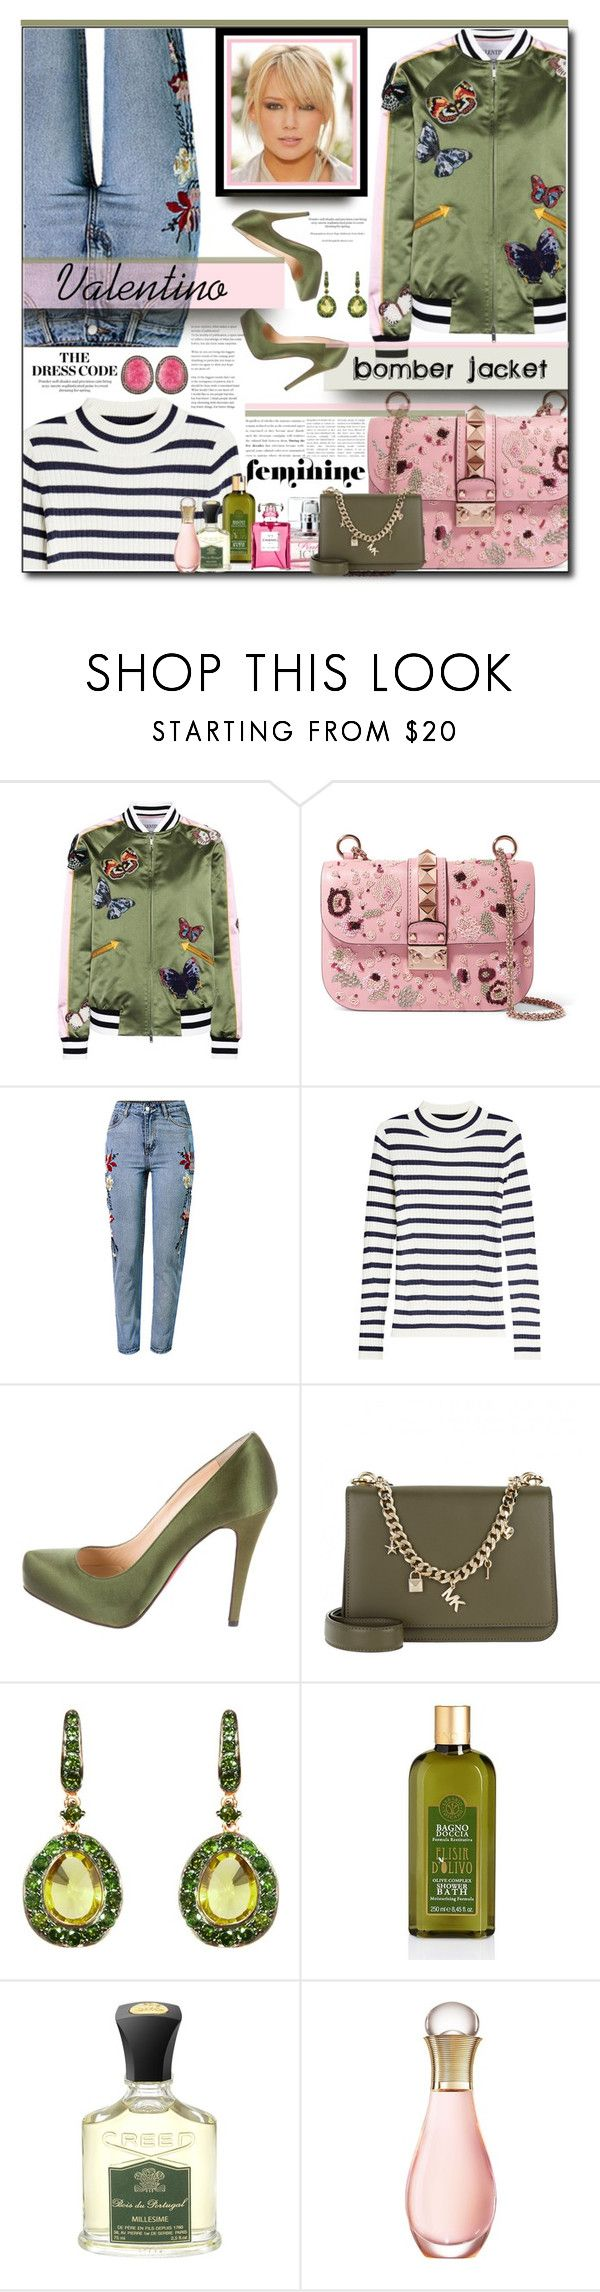 """Fresh Set for 2018"" by polyvore-suzyq ❤ liked on Polyvore featuring Valentino, WithChic, Steffen Schraut, Christian Louboutin, Michael Kors, Annoushka, Creed, Christian Dior, Chanel and Carousel Jewels"